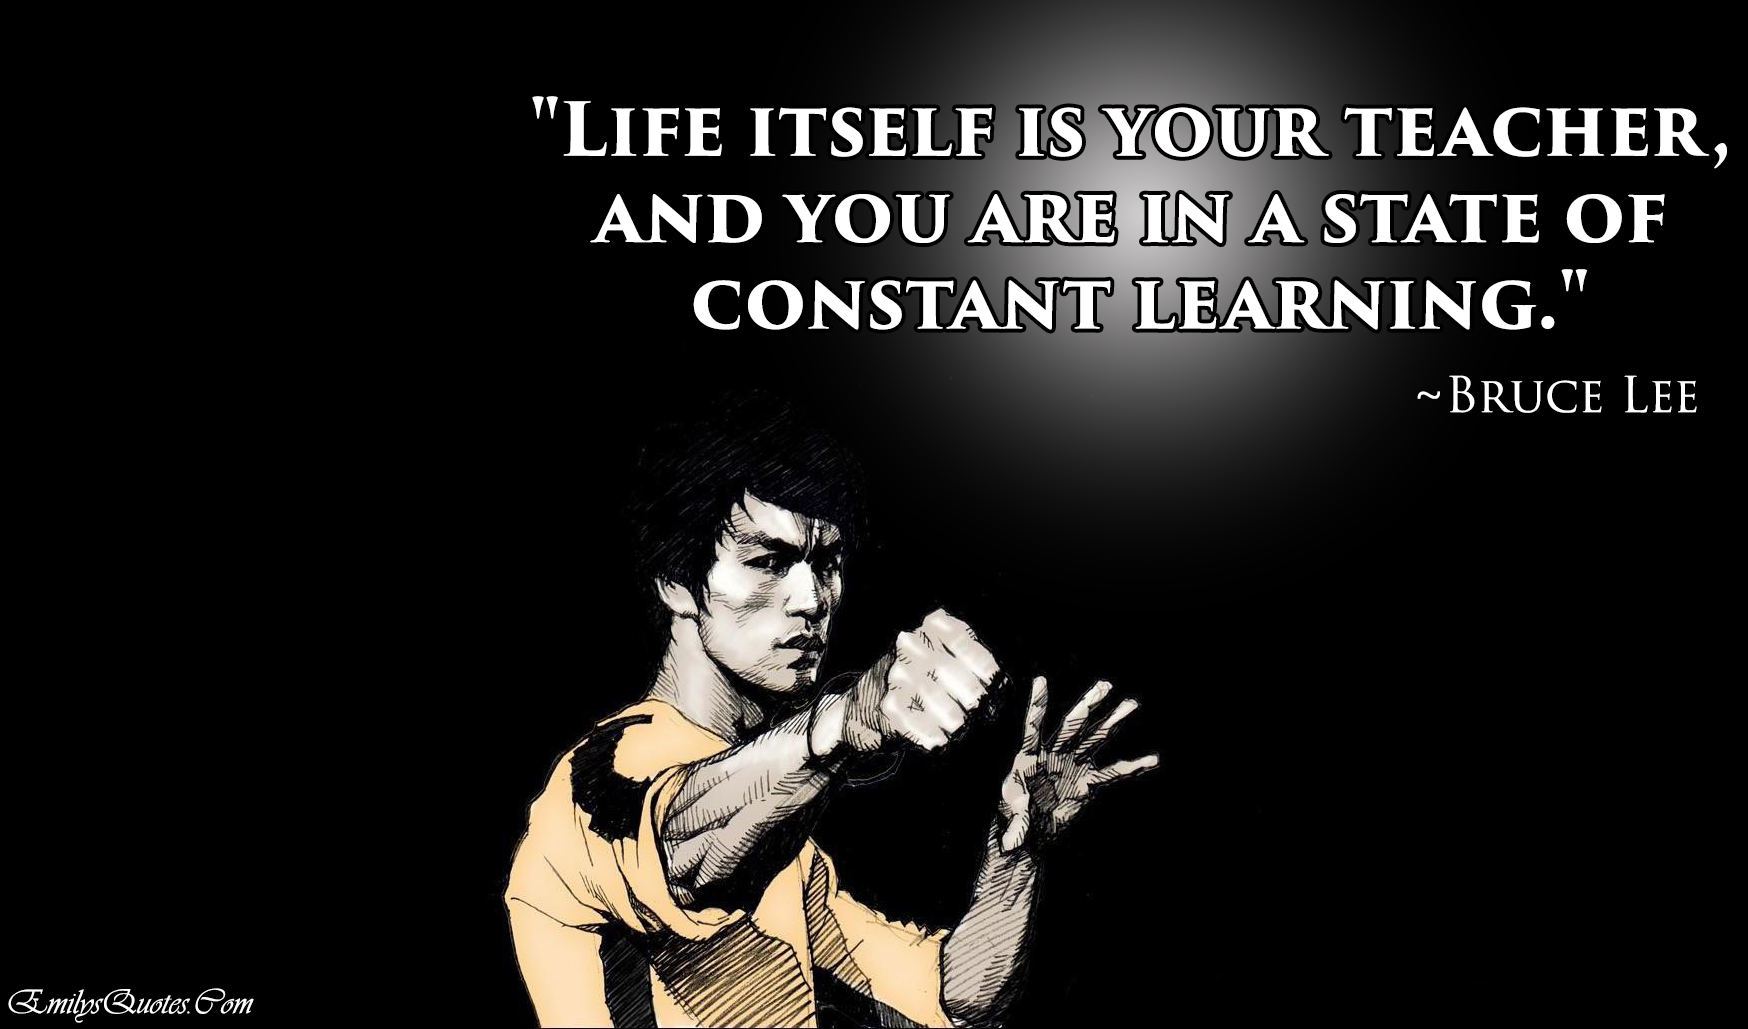 Wisdom About Life Quotes Interesting Life Itself Is Your Teacher And You Are In A State Of Constant